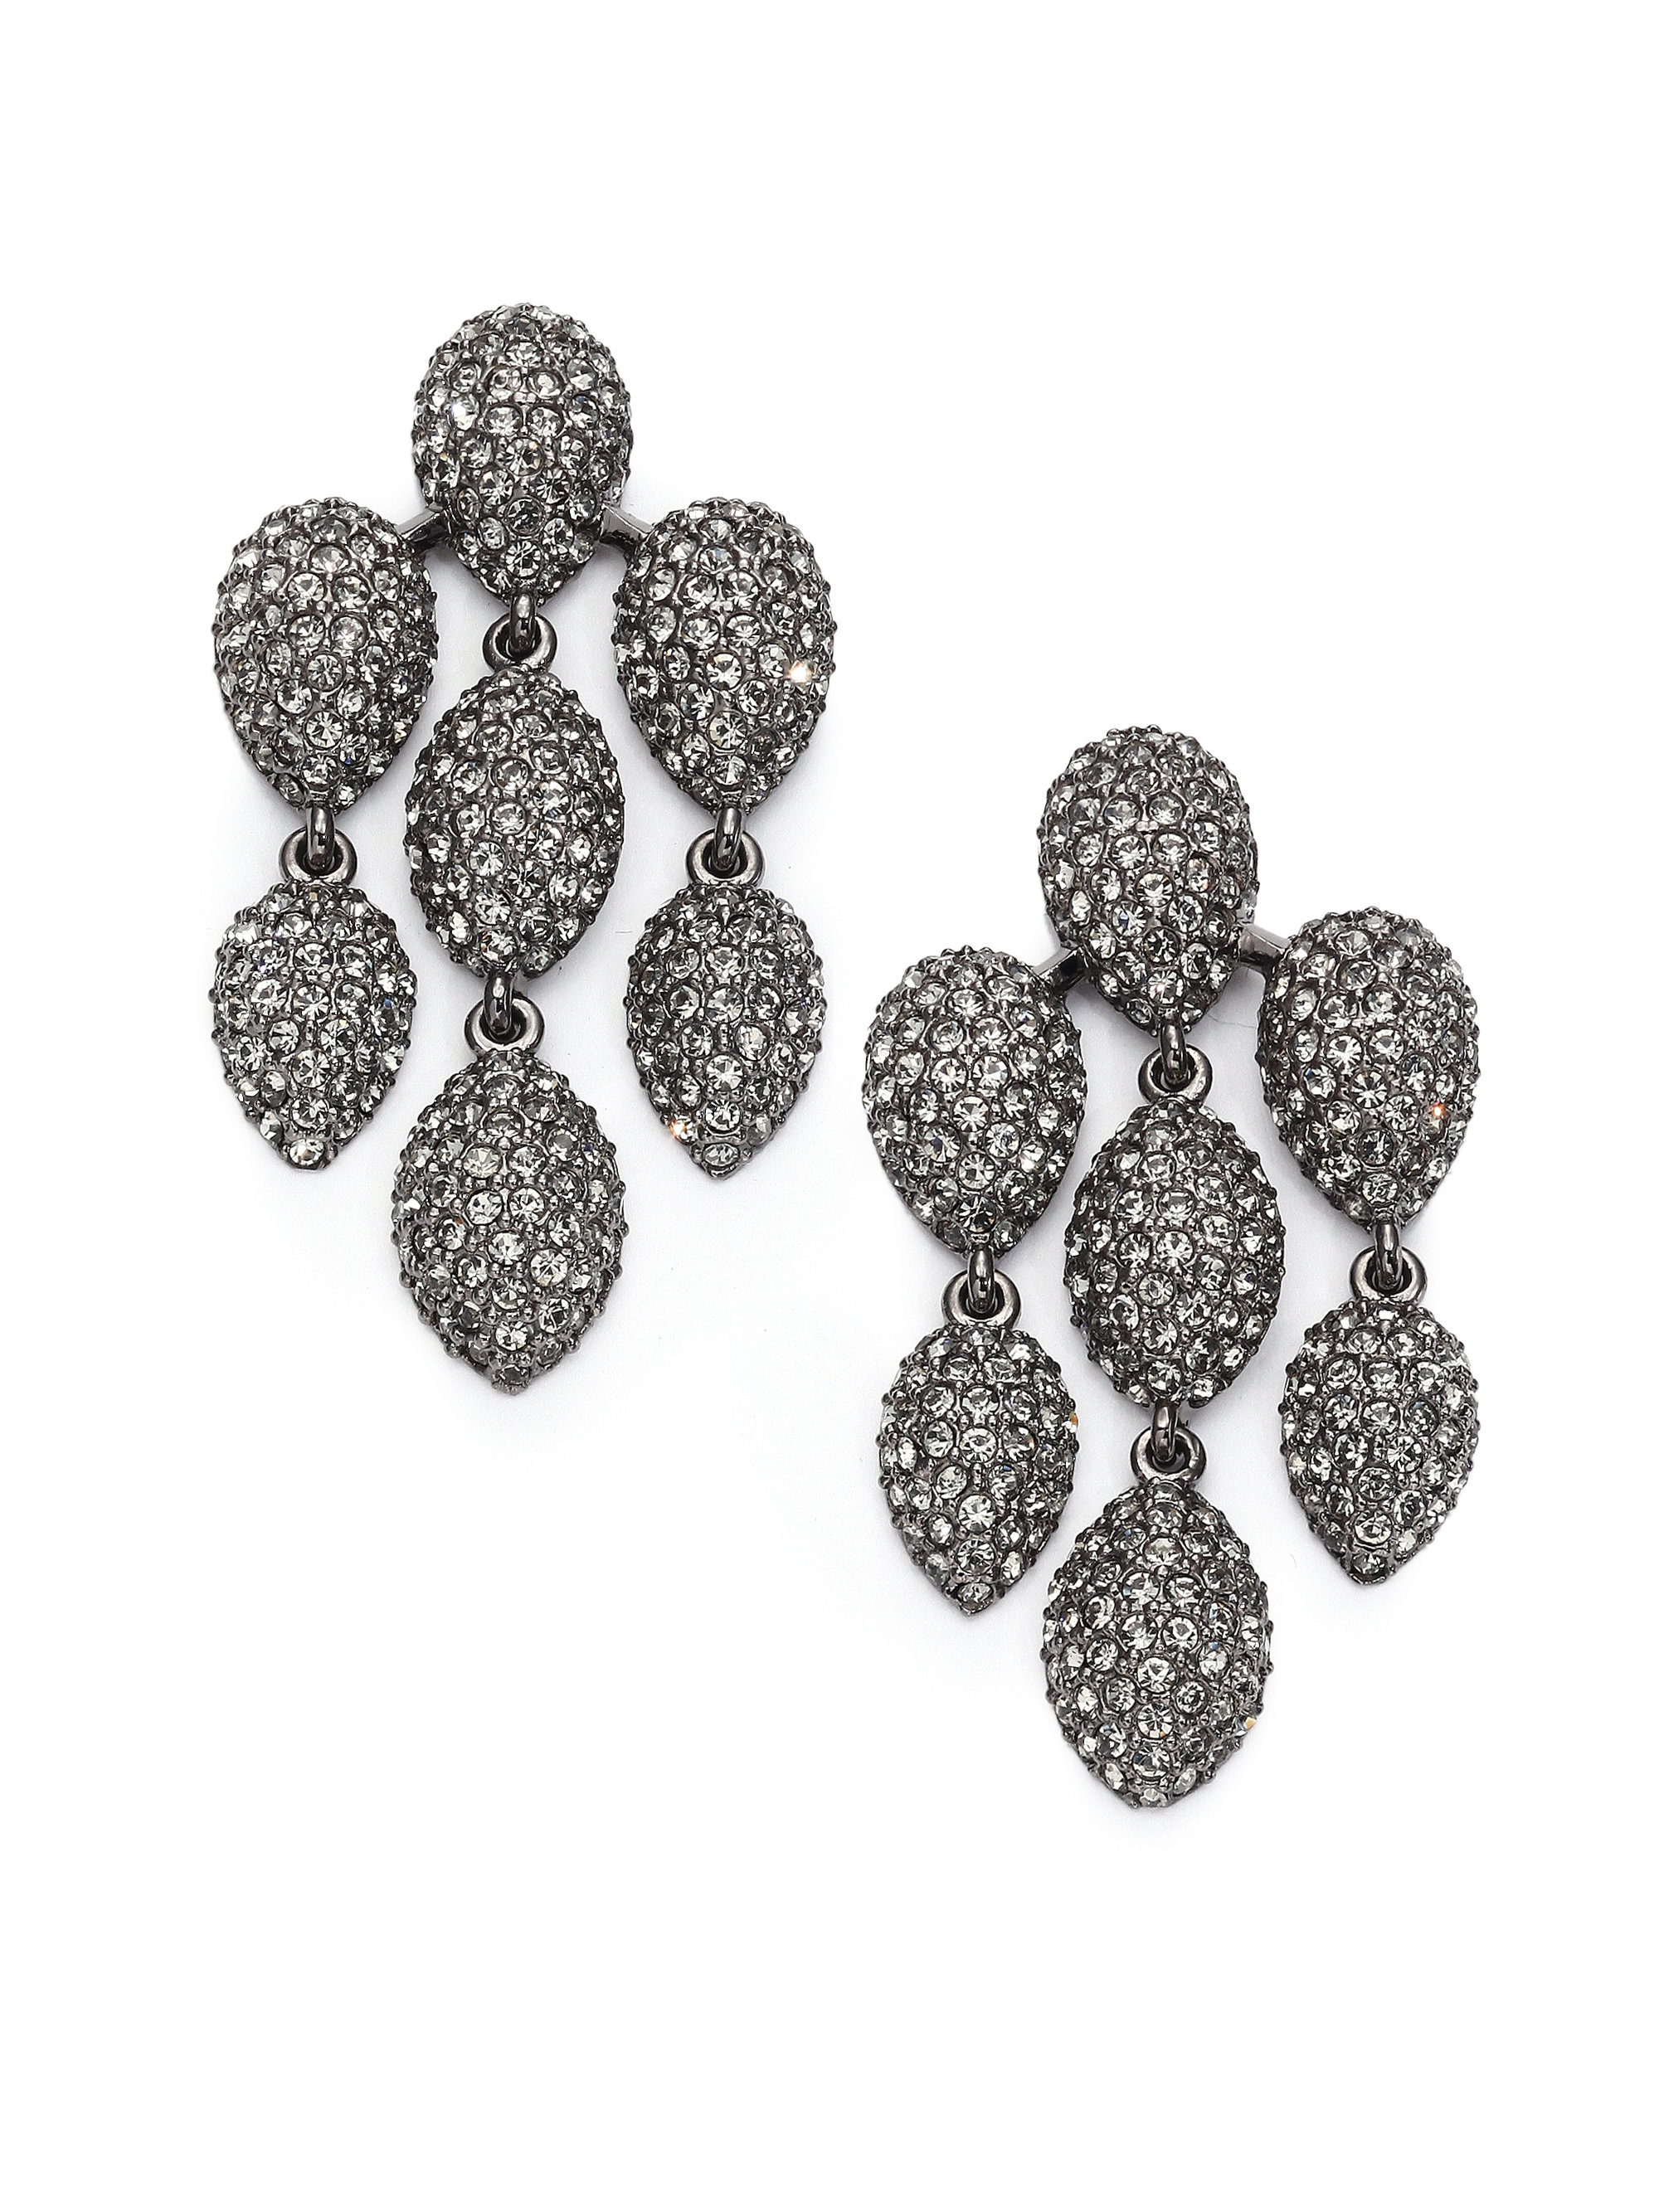 product erc singh shop jewelry nello amrita star earrings gunmetal earring main